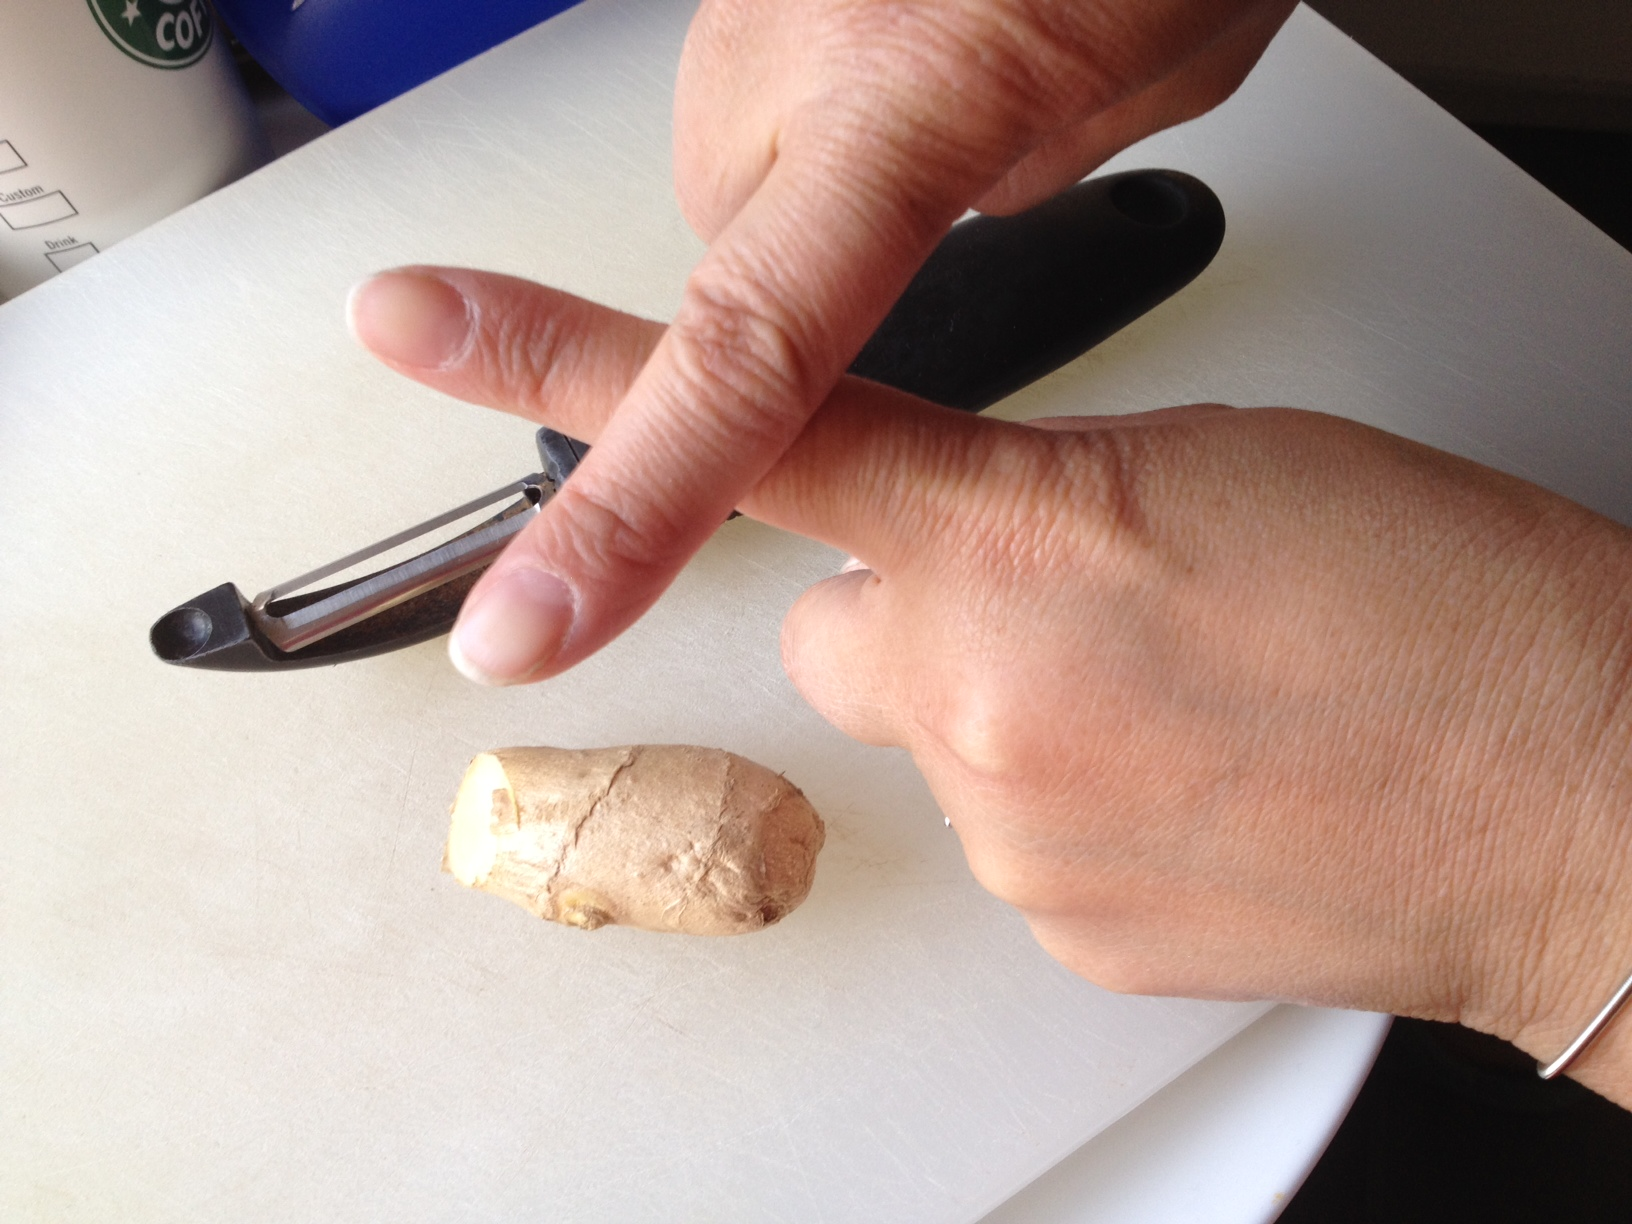 A better way to peel ginger